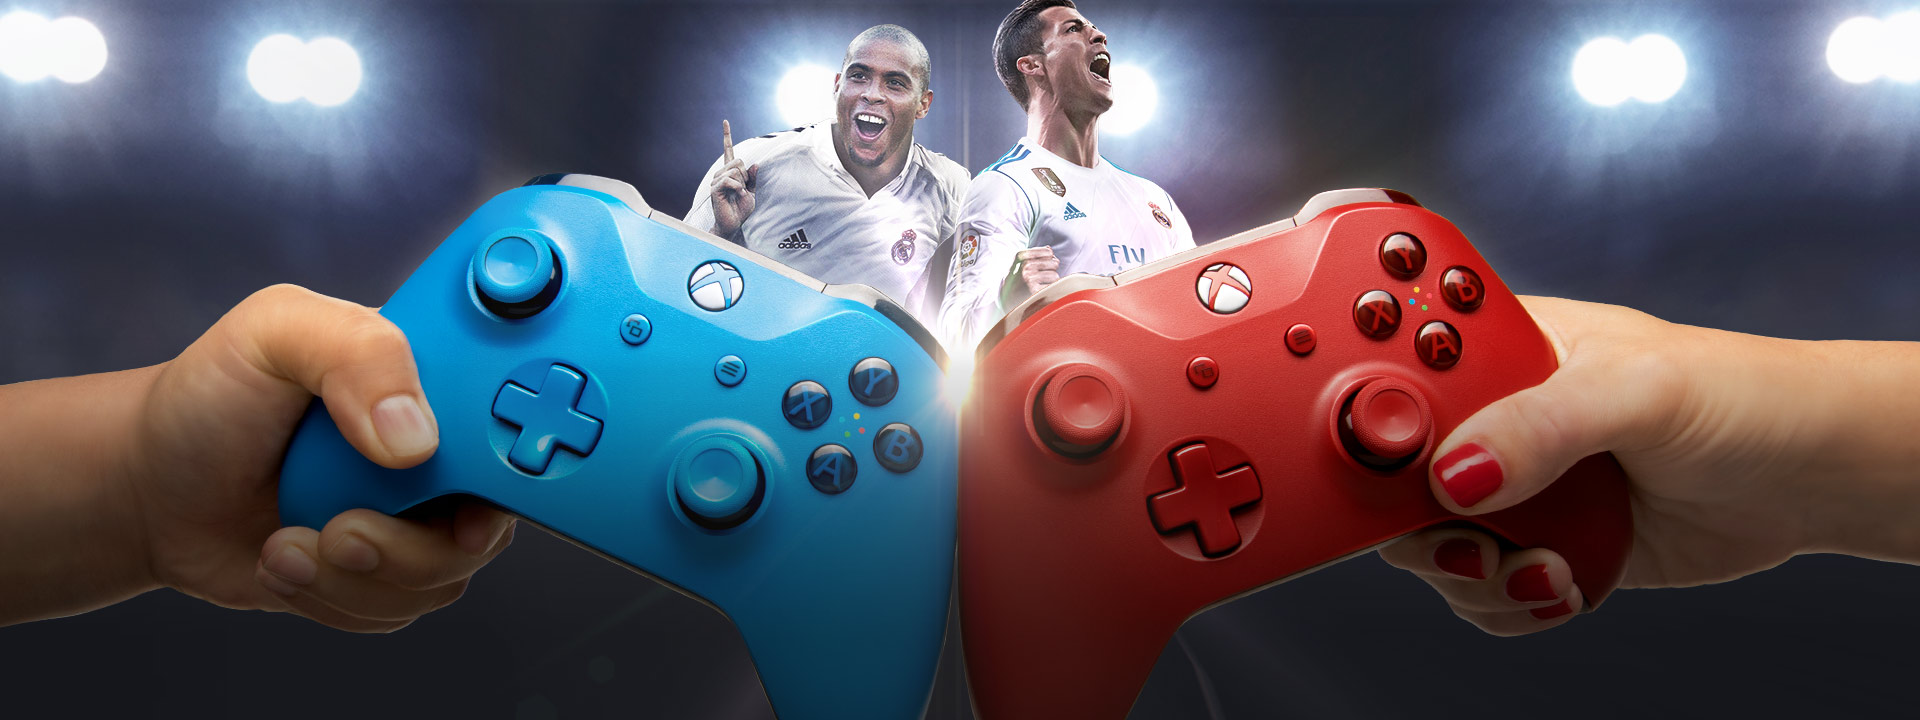 People holding a Blue and Red Xbox controller with the Ronaldo's from Real Madrid